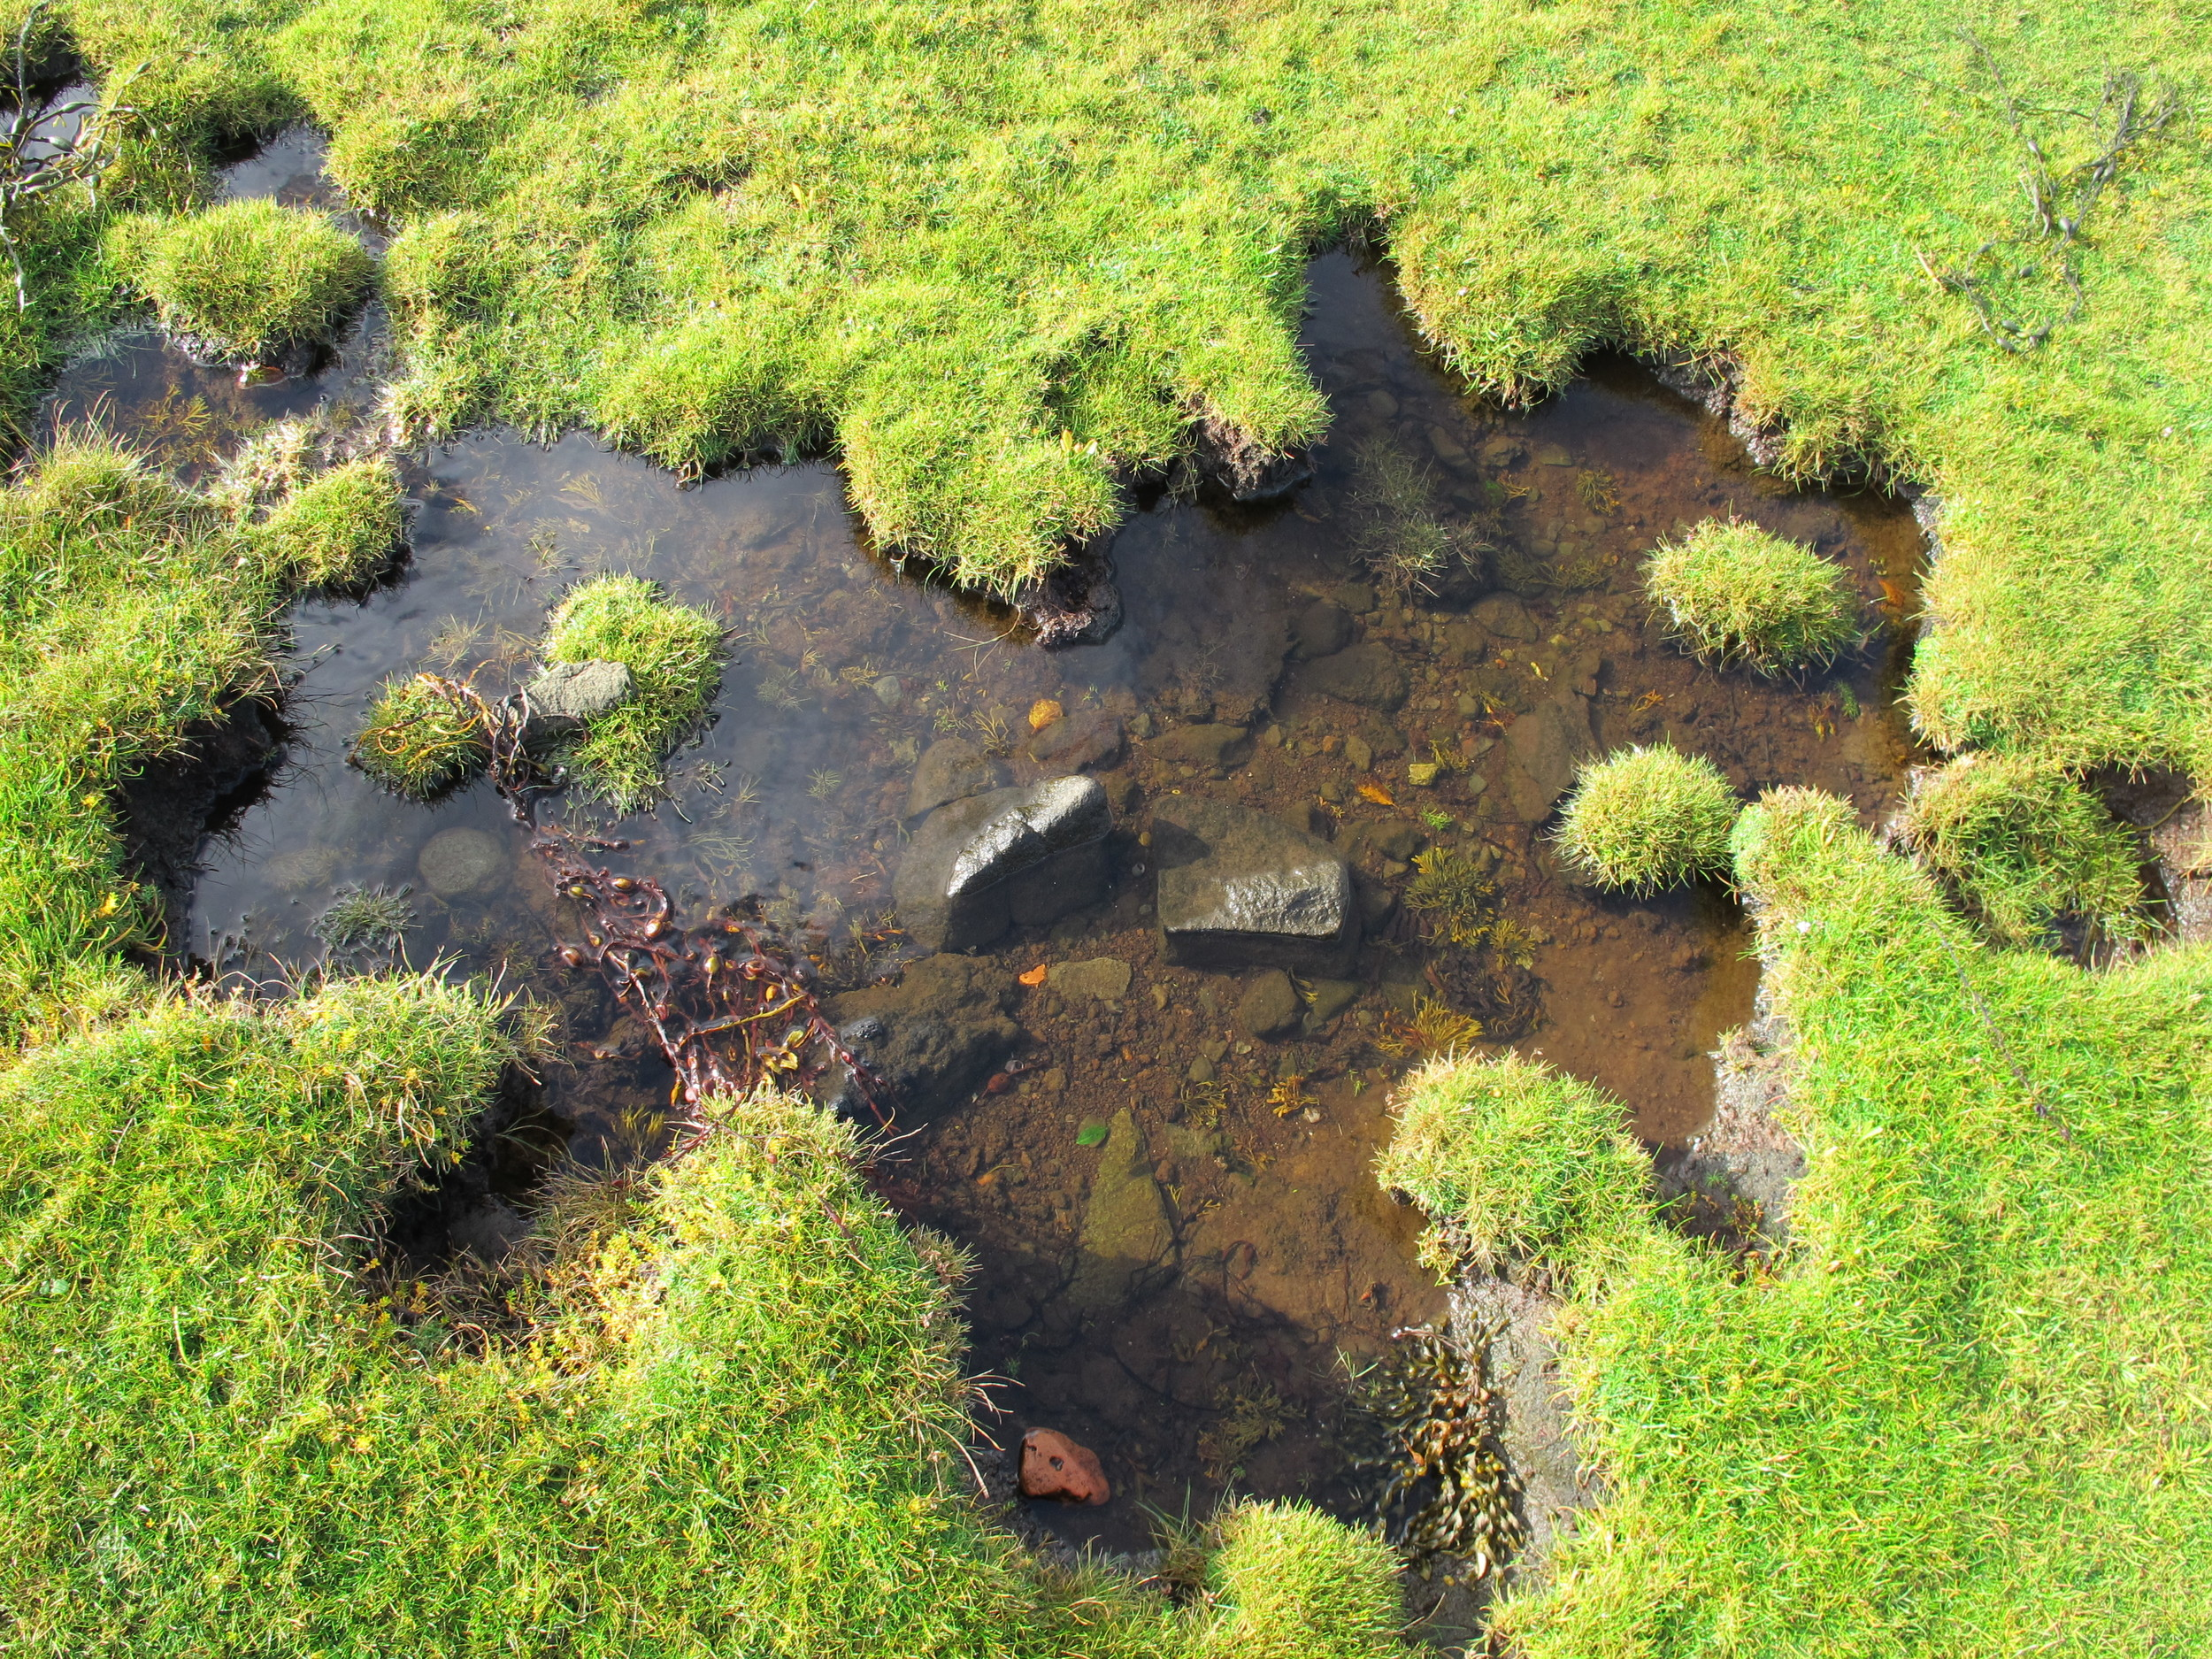 Lovely grass-rimmed pools like this dotted the edge of the intertidal zone.